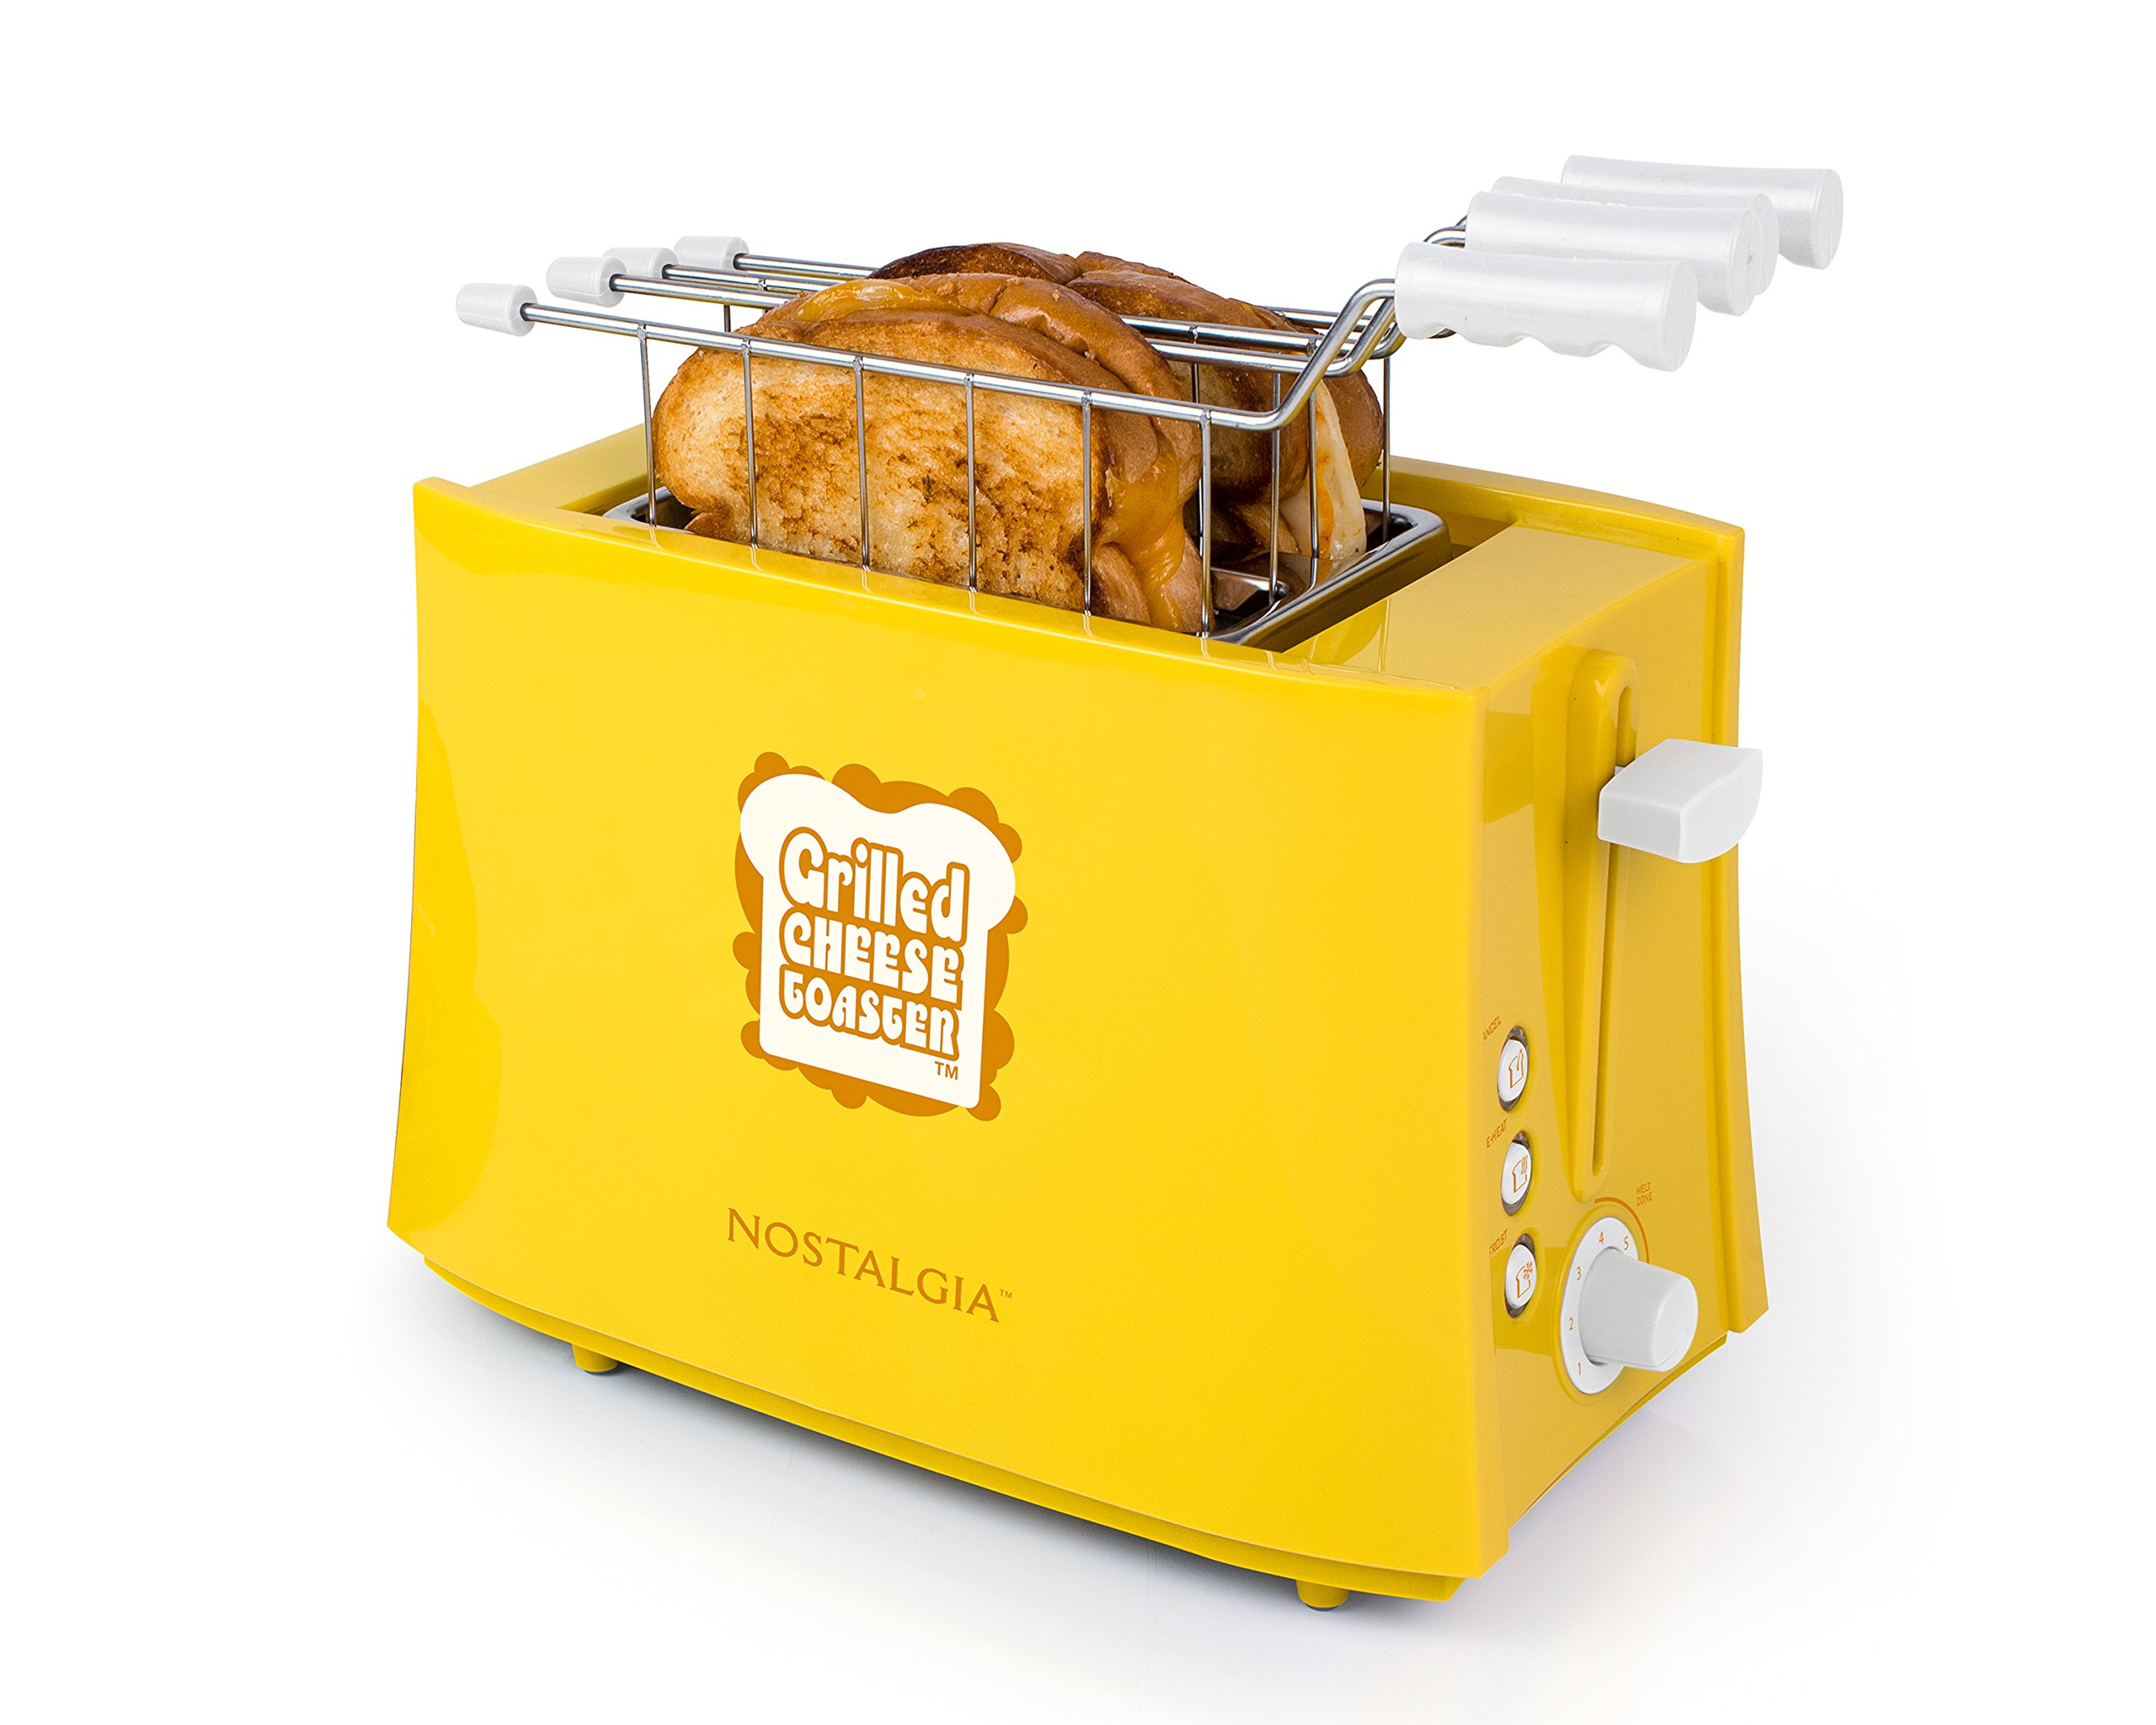 Nostalgia TCS2 Grilled Cheese Toaster with Easy-Clean Toaster Baskets and Adjustable Toasting Dial by NOSTALGIA